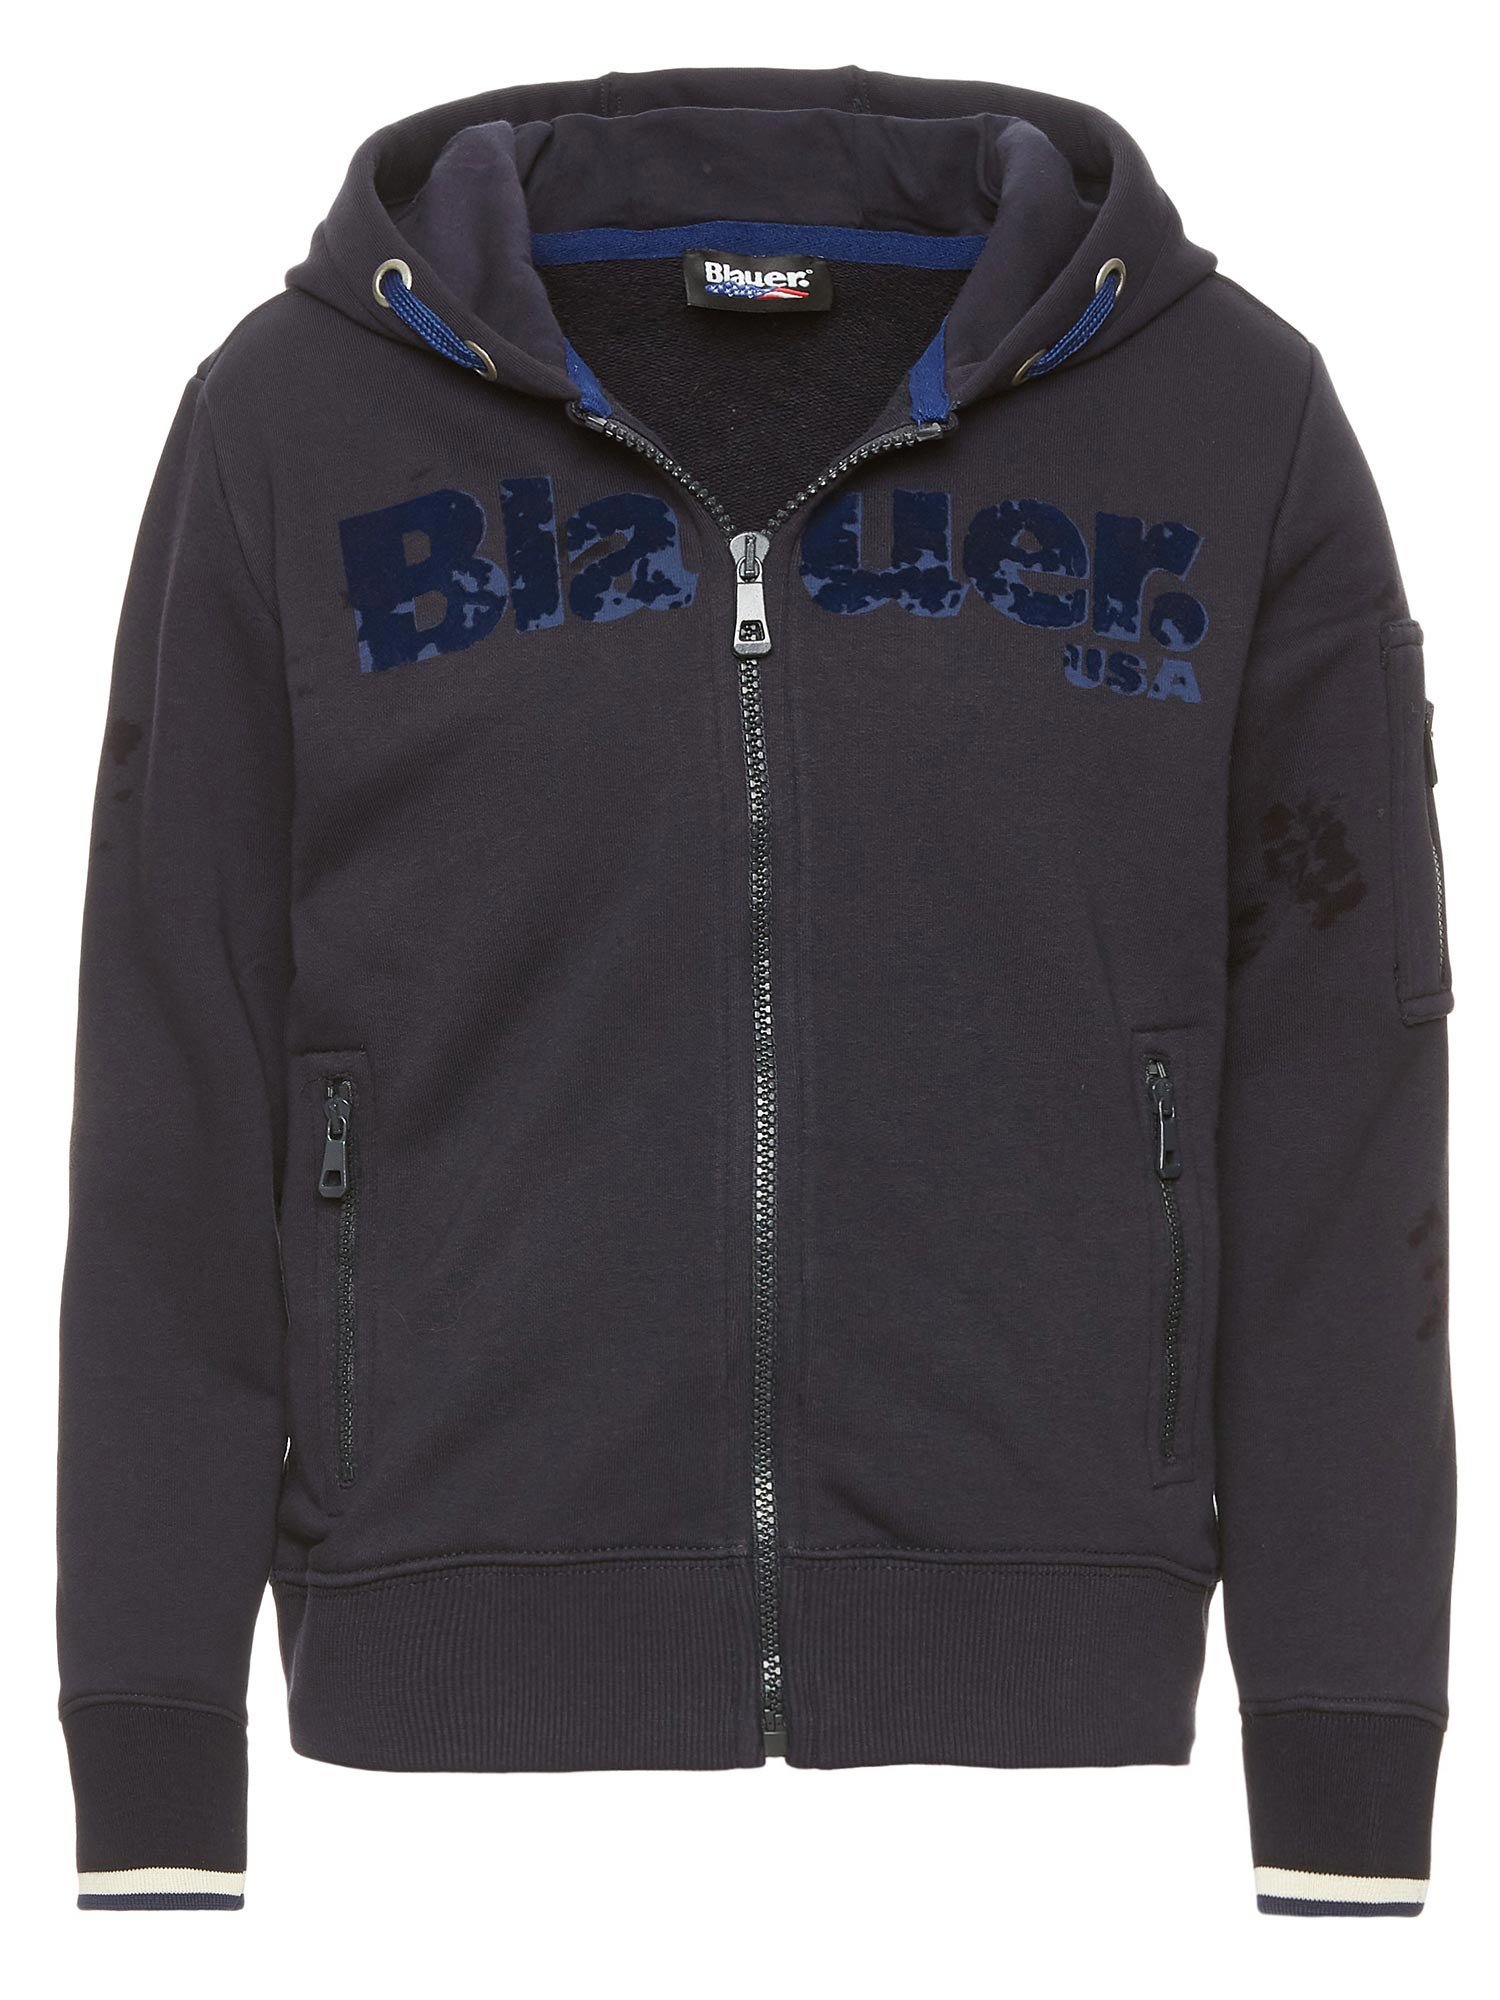 KID'S OPEN SWEATSHIRT WITH HOOD - Blauer